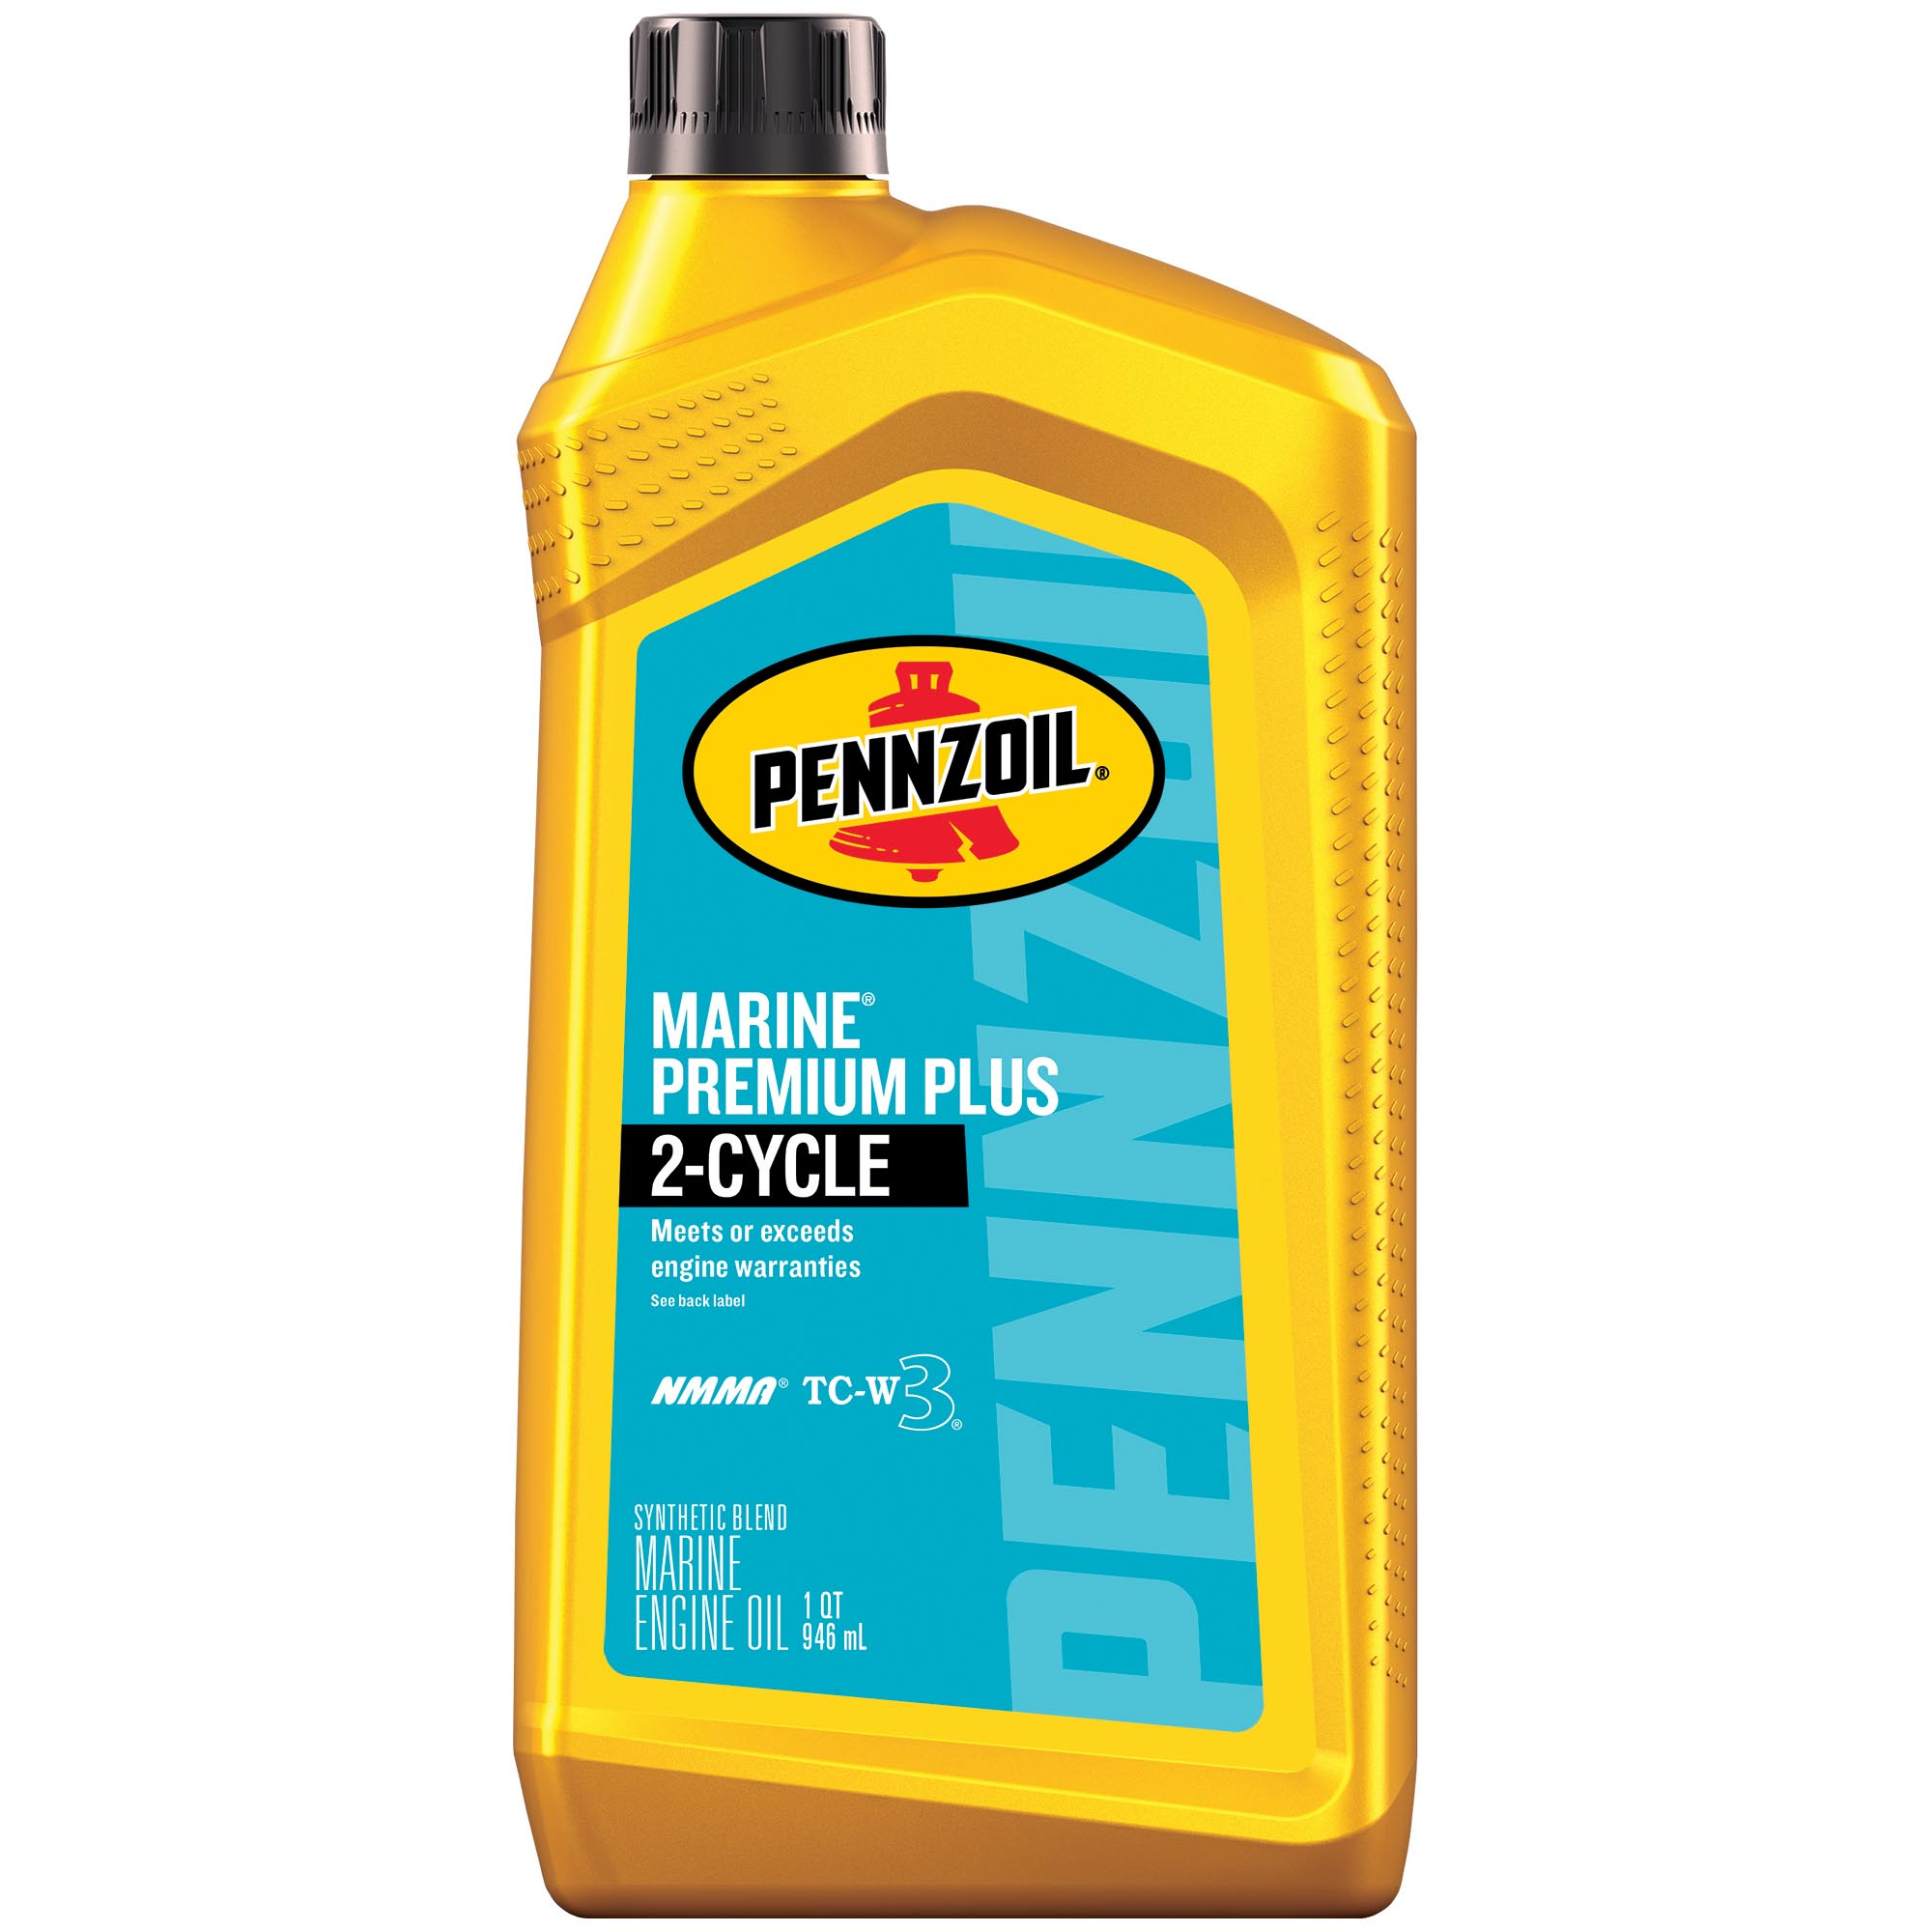 PENNZOIL MARINE PREMIUM PLUS 2-CYCLE SYNTHETIC BLEND OIL, 1-quart